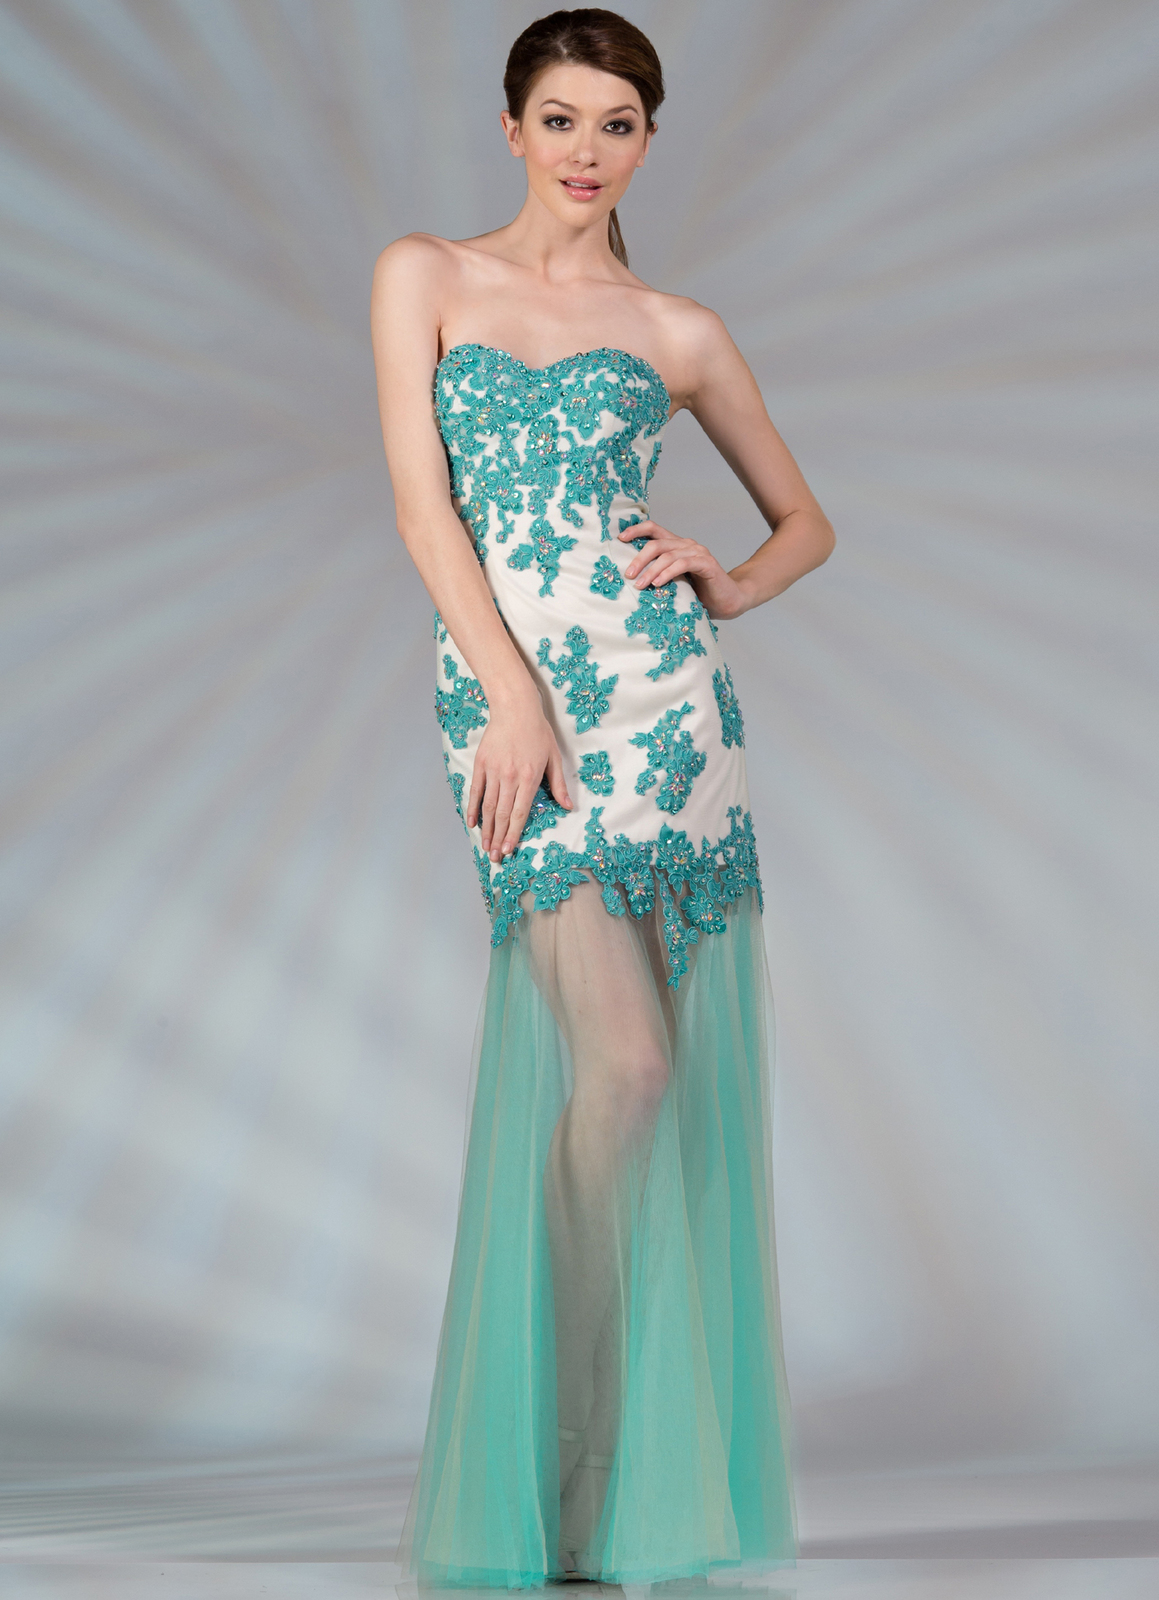 Blue vintage floral prom dress - Best Dressed